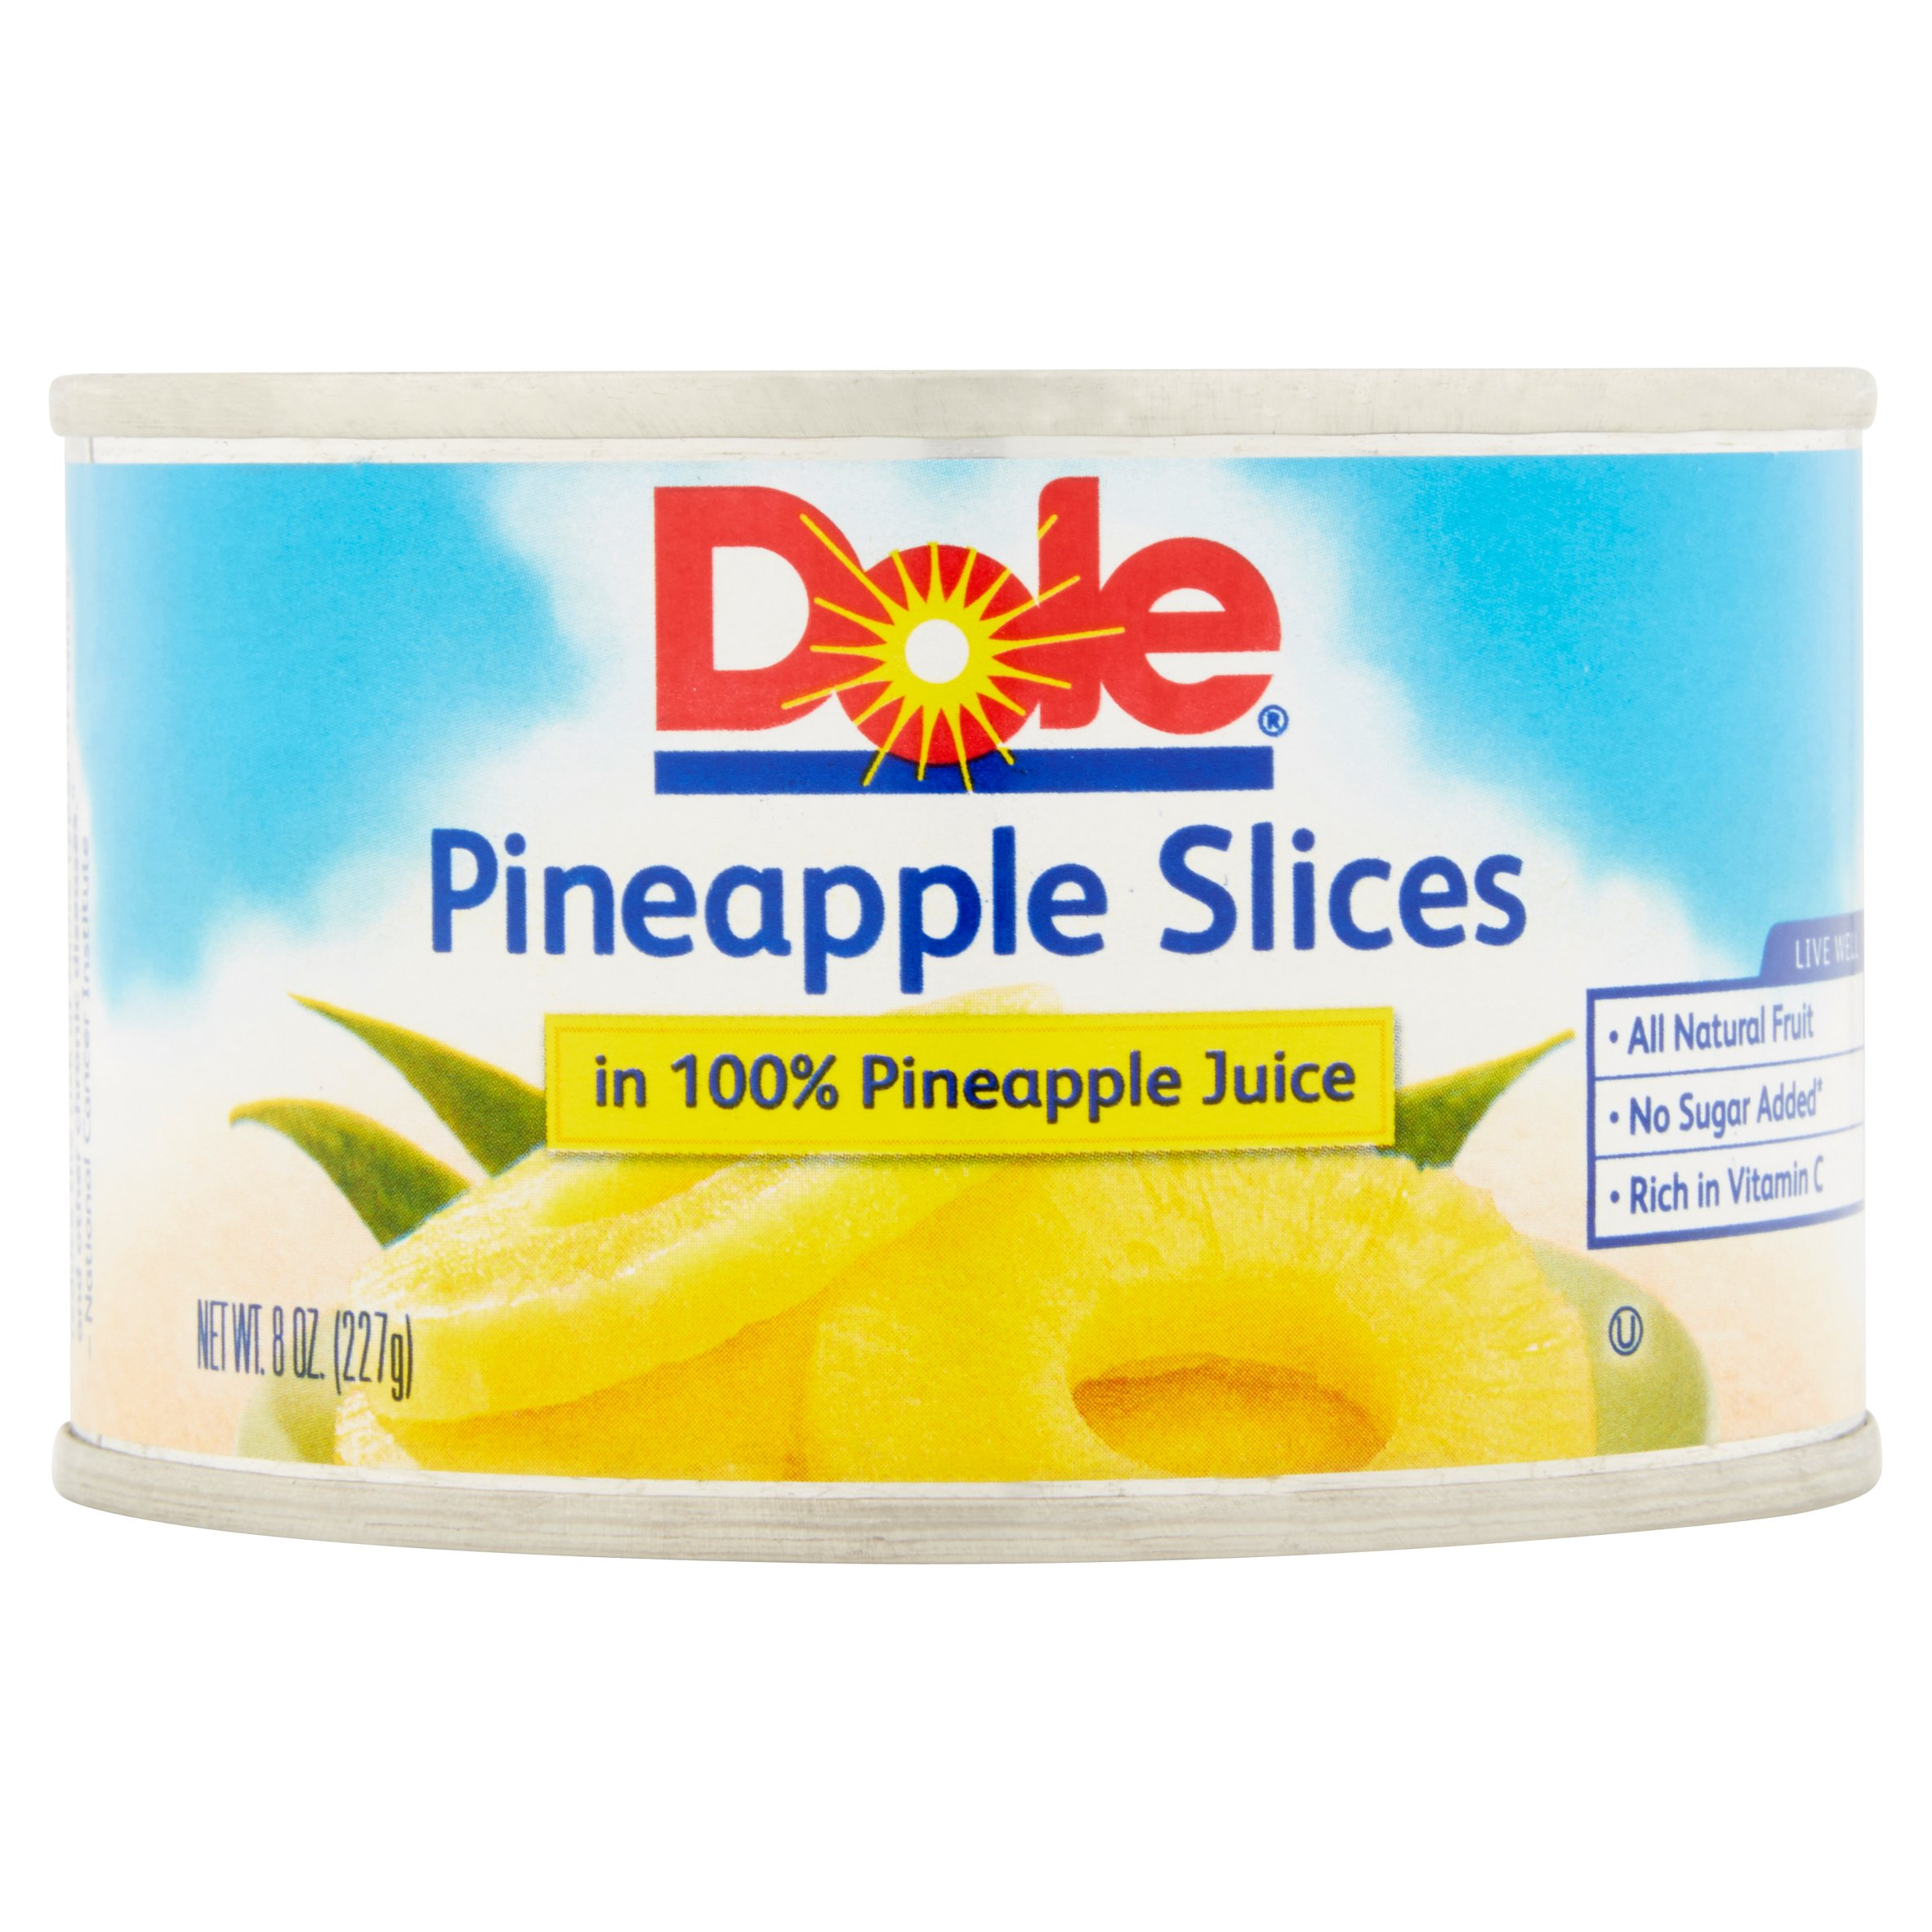 Dole Pineapple Slices in 100% Pineapple Juice, 8 oz. Can